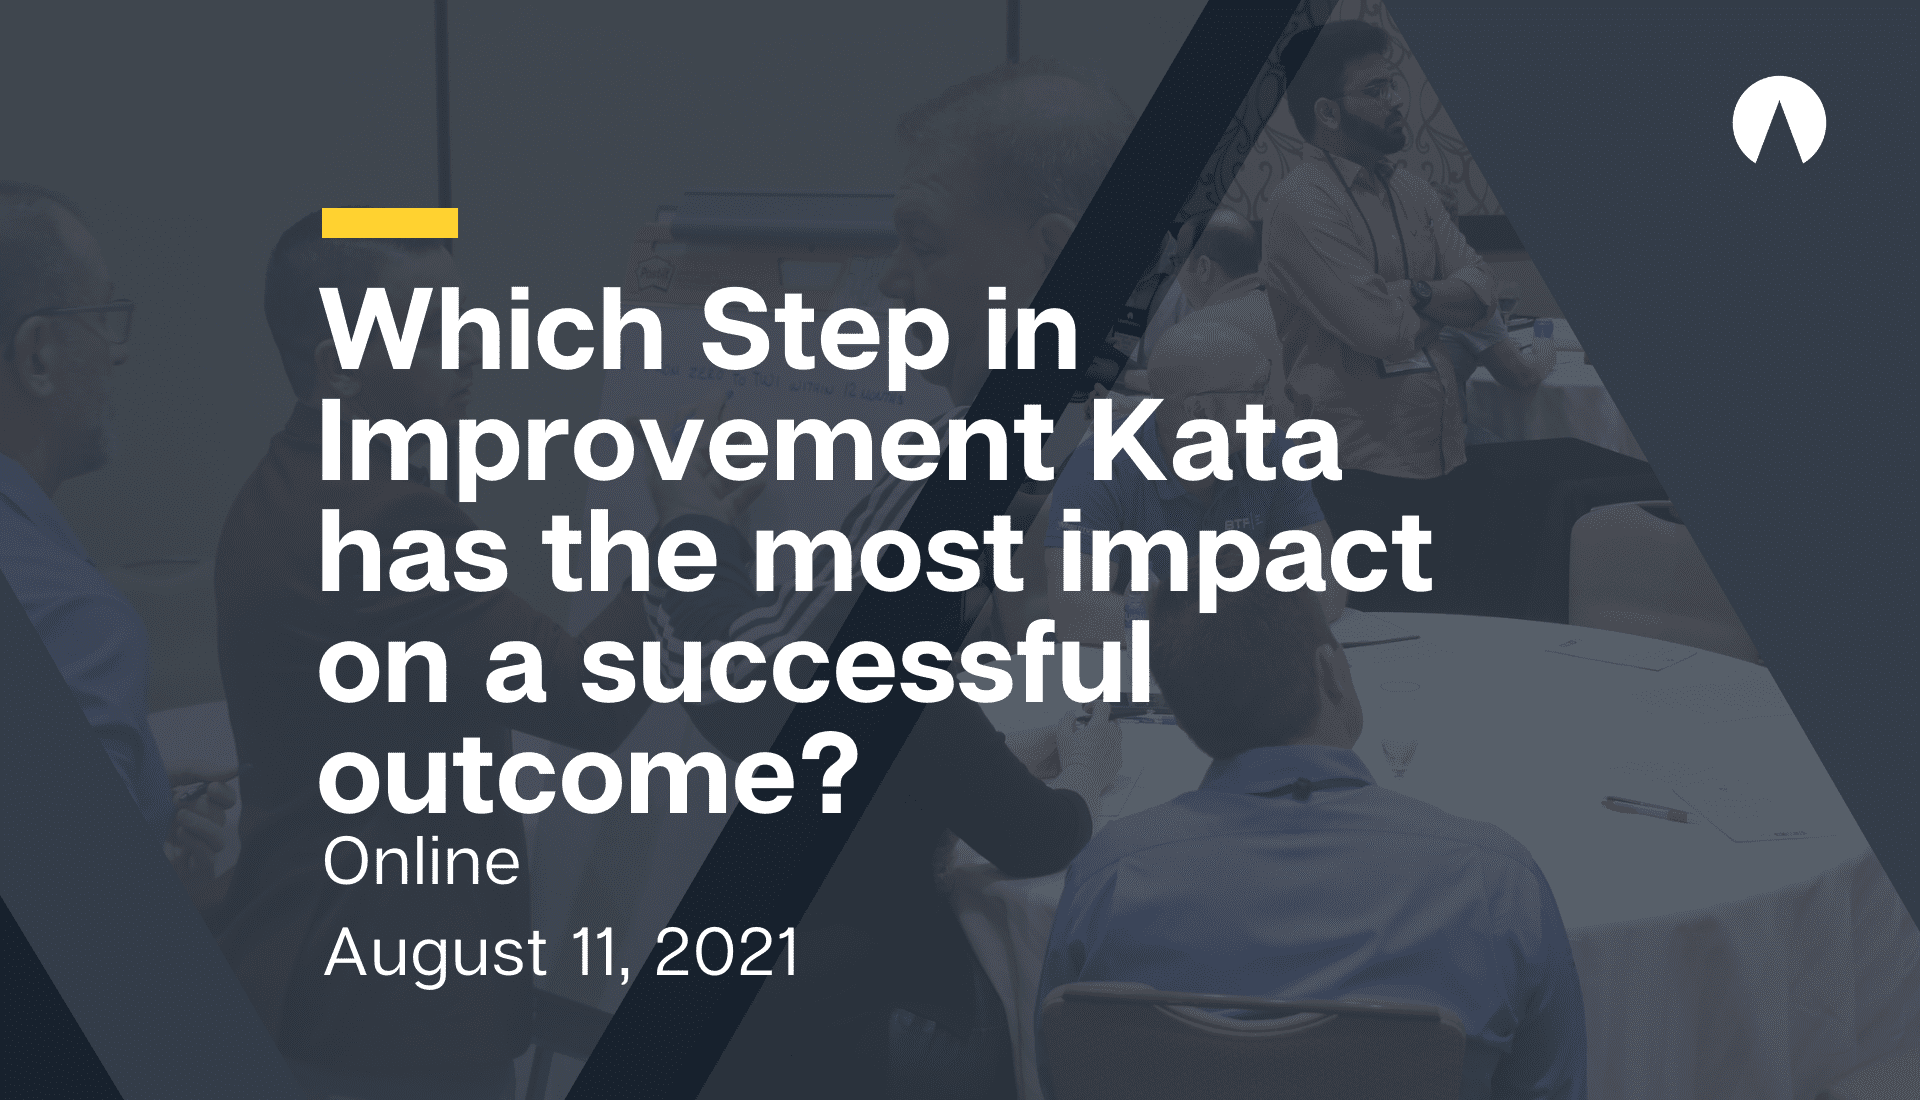 Which Step in the Improvement Kata has the most impact on a successful outcome?